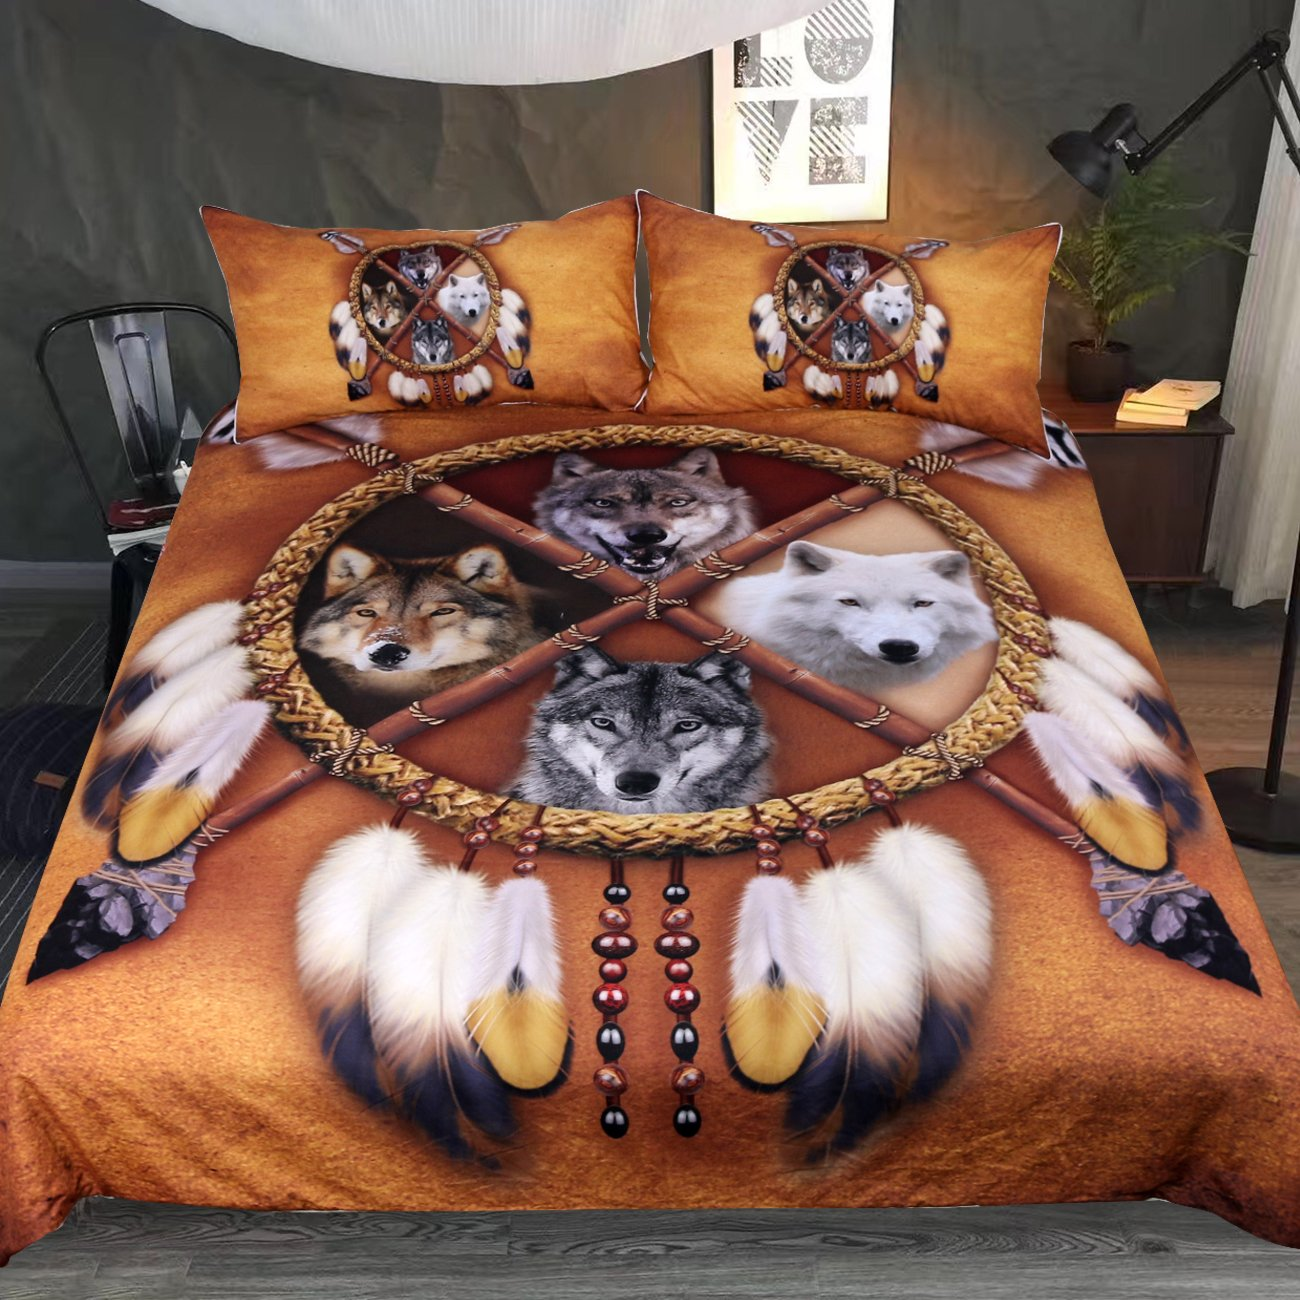 Sleepwish Wolf Dream Catcher Bedspread Native American Bedding Wolf Quilt Cover Golden Brown Indian Duvet Cover (Twin,55x82 3pcs, 4 Wolves Dreamcatcher) 55x82 3pcs Youhao SQS011337006